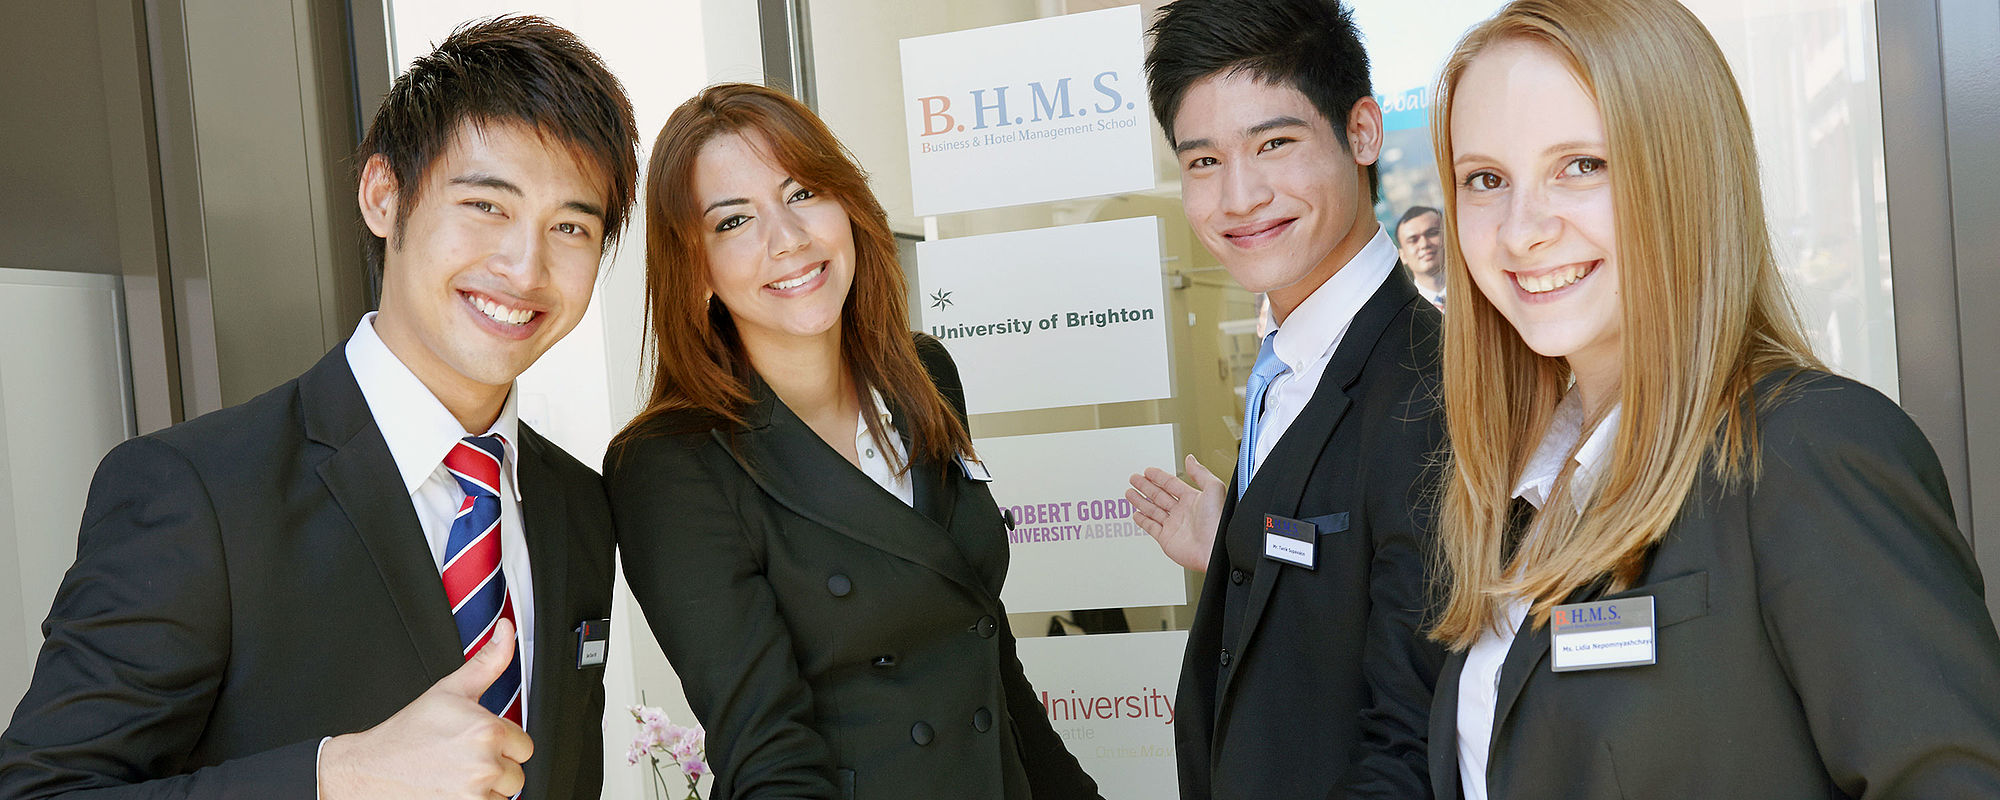 Business & Hotel Management B.H.M.S., Switzerland Lucerne